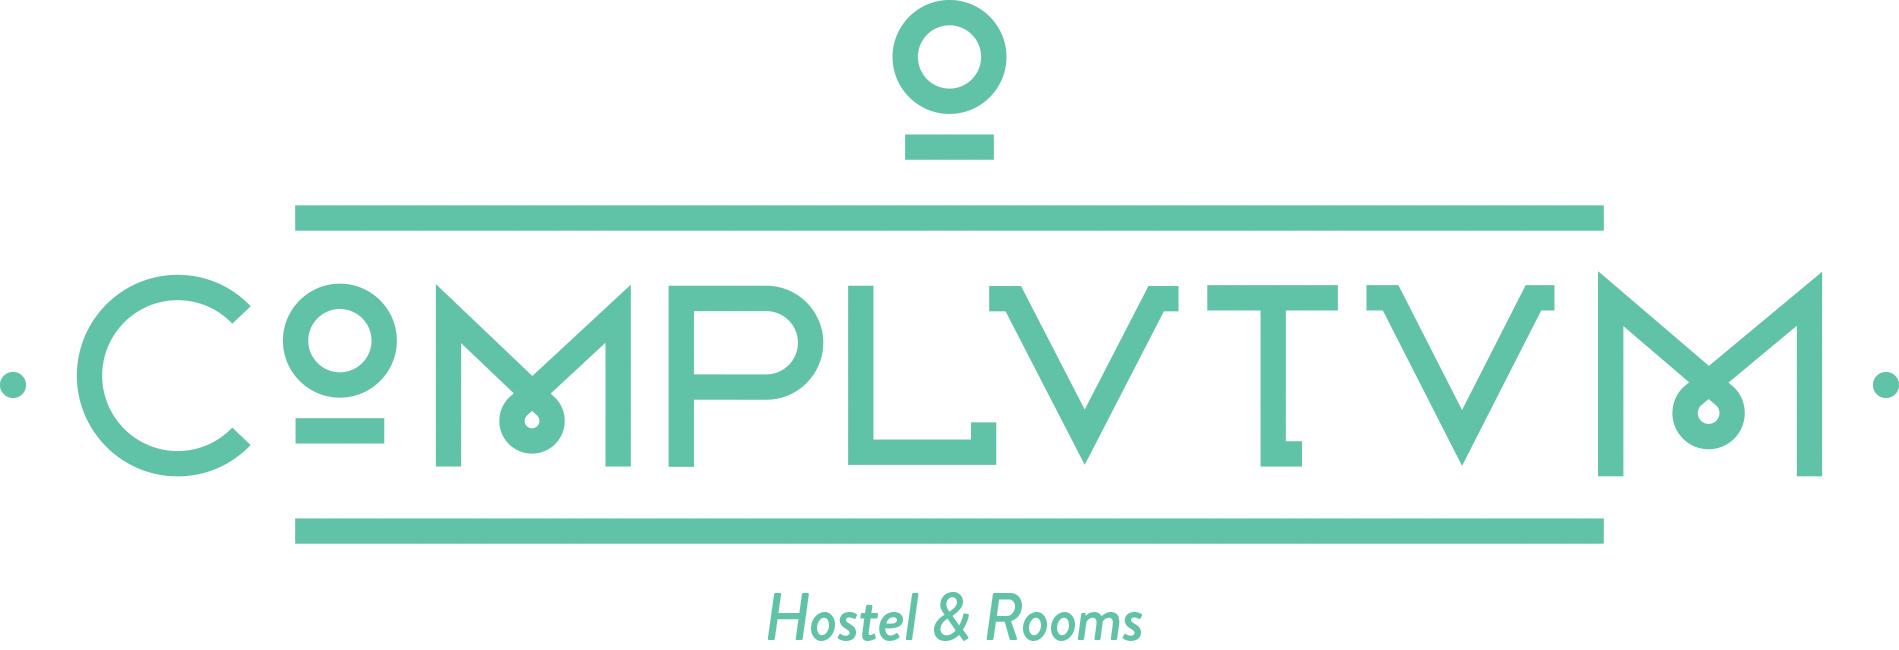 logo_complutumpositivocolor-hostel-rooms